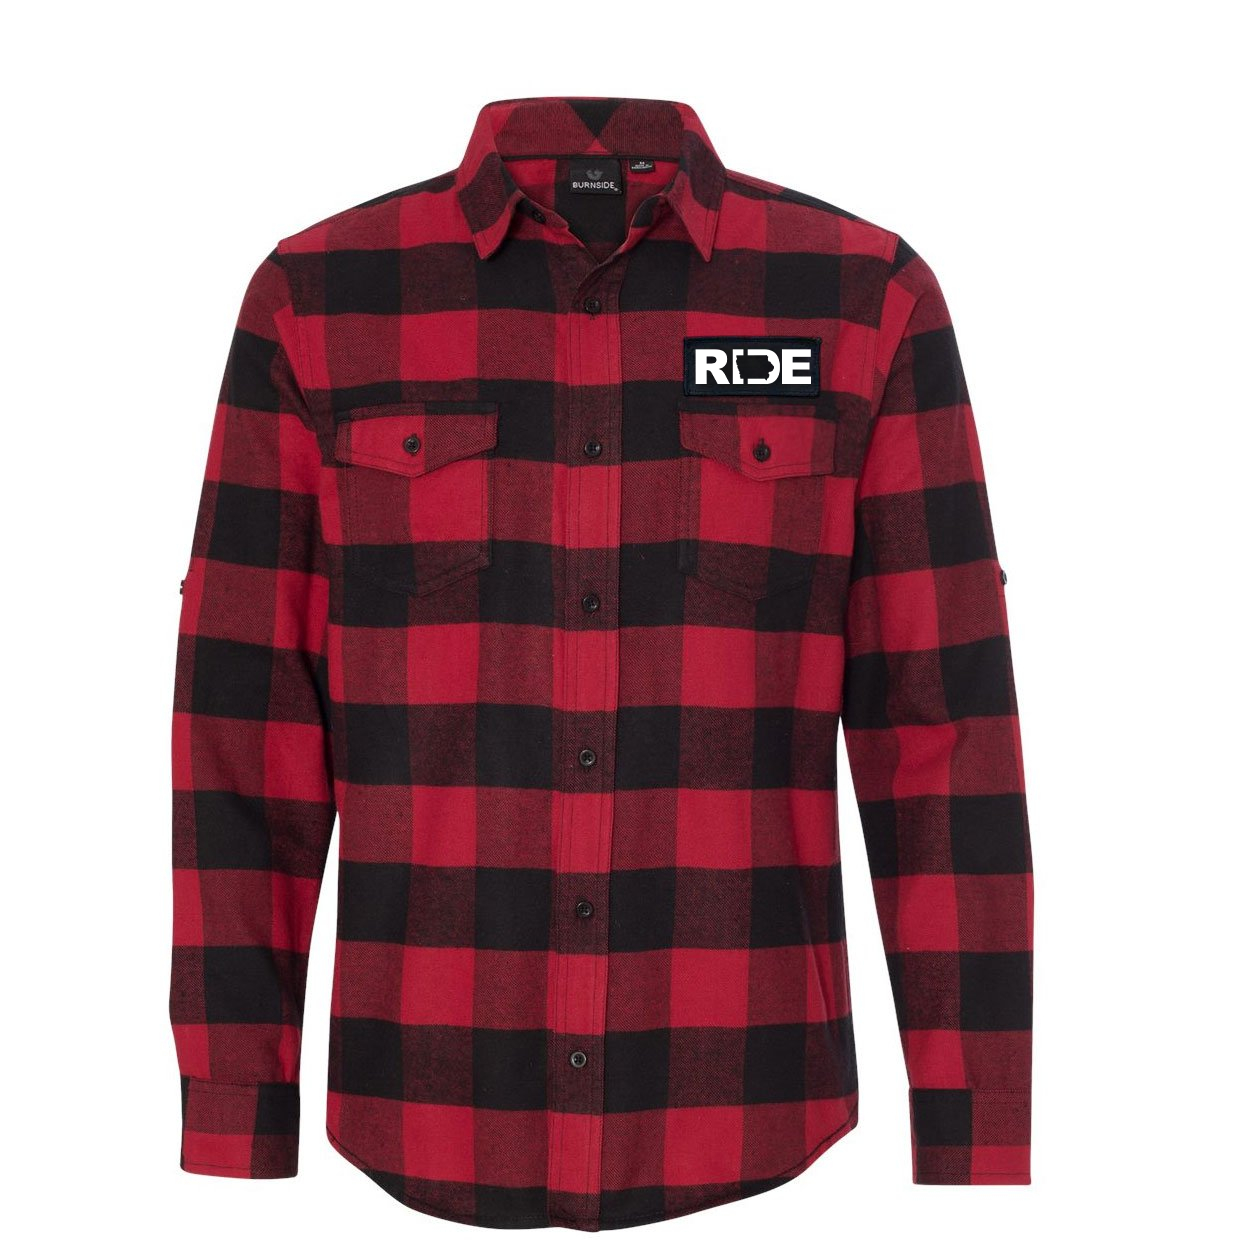 Ride Iowa Classic Unisex Long Sleeve Woven Patch Flannel Shirt Red/Black Buffalo (White Logo)